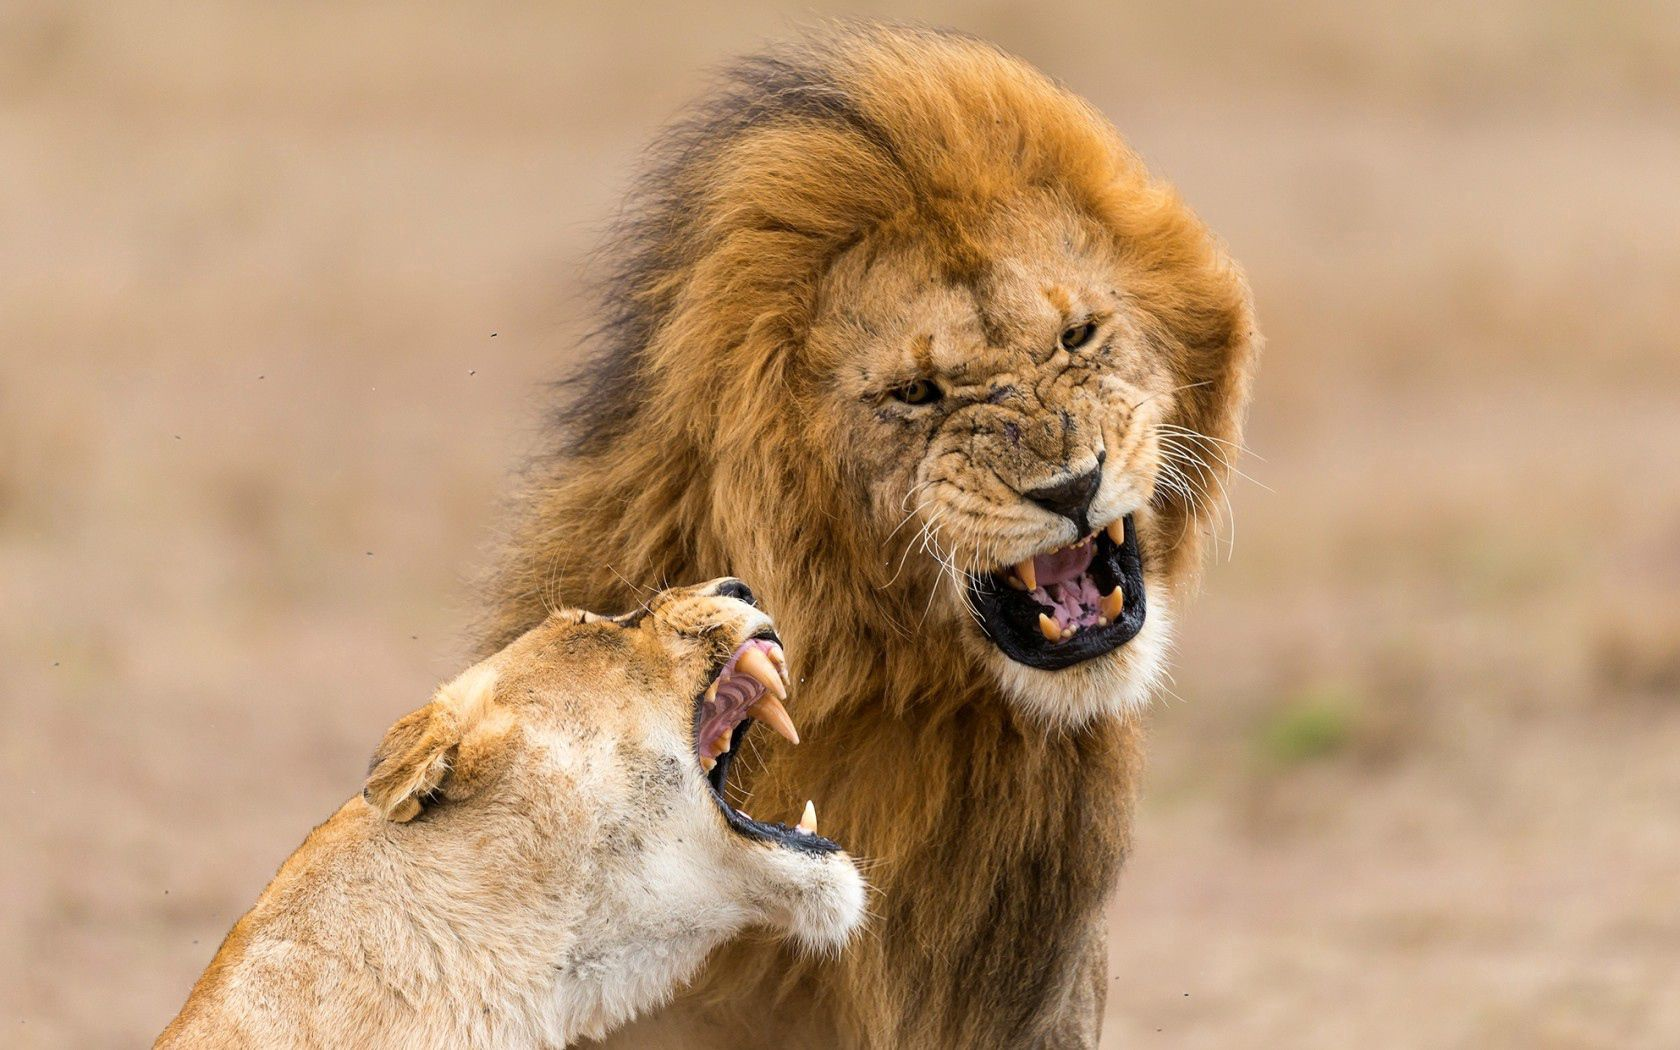 96444 download wallpaper Animals, Lion, Lioness, Aggression, Grin screensavers and pictures for free